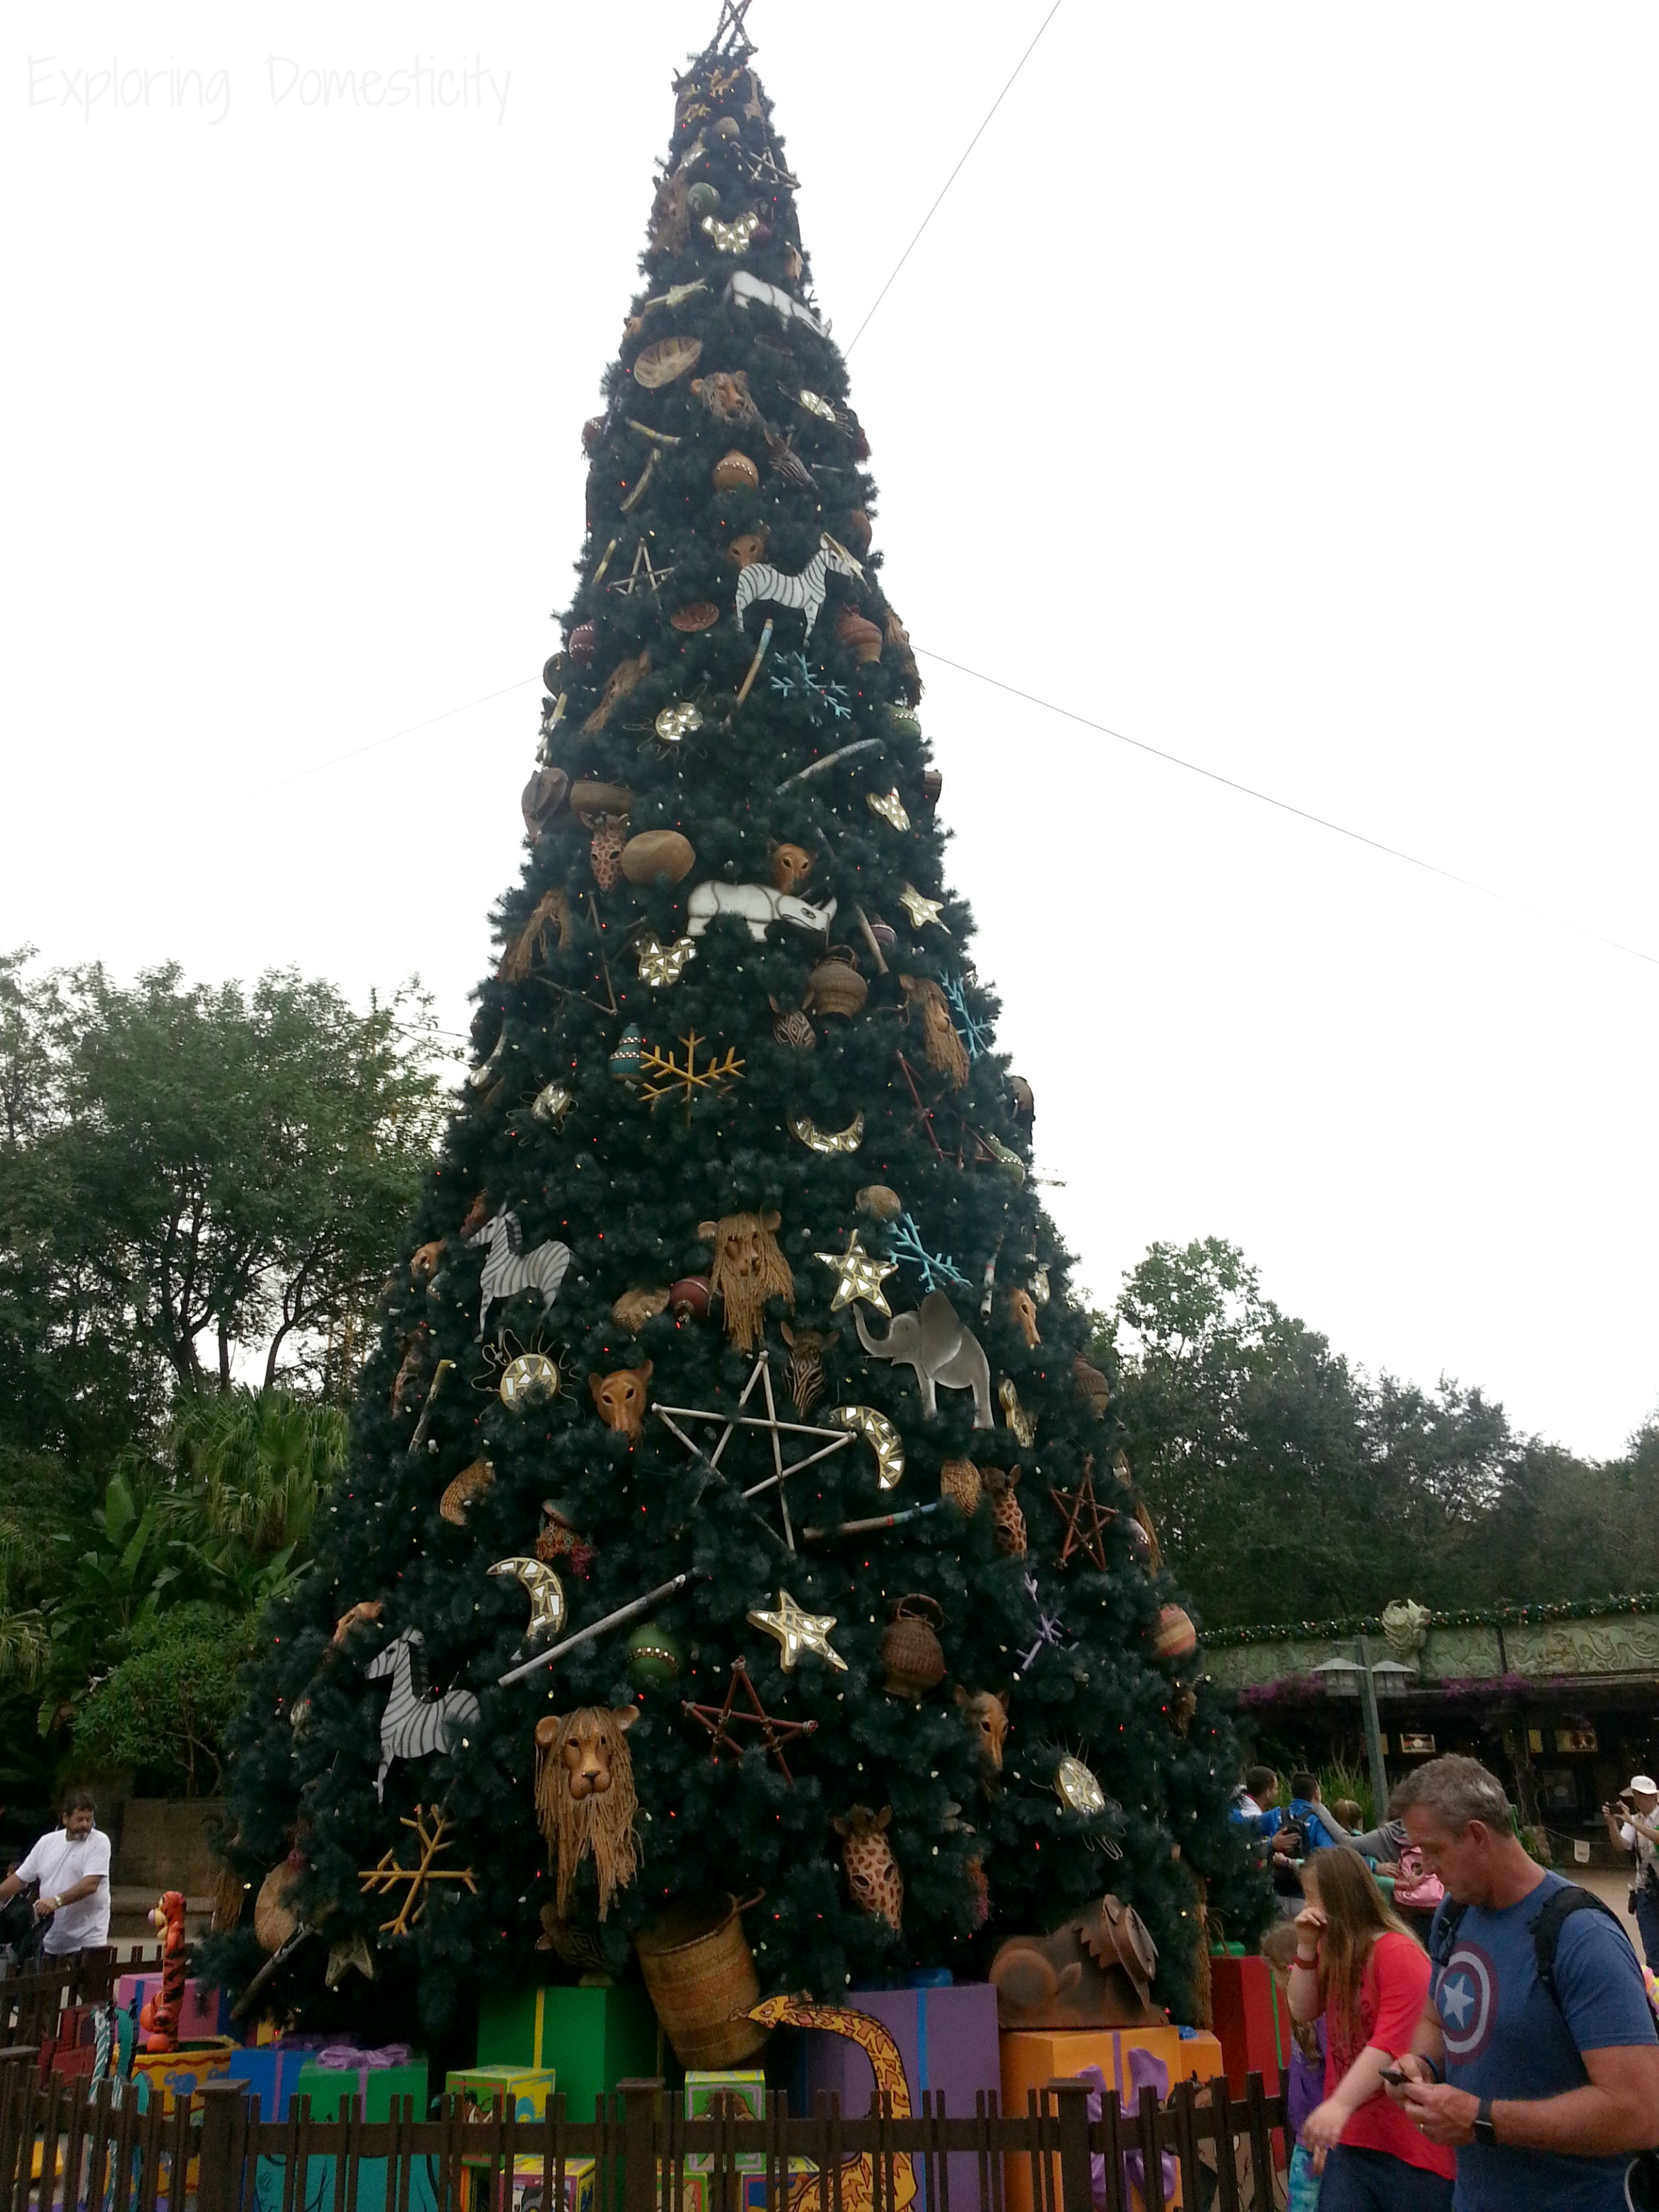 disney world during christmas holiday decorations at animal kingdom - When Does Disney World Decorate For Christmas 2017